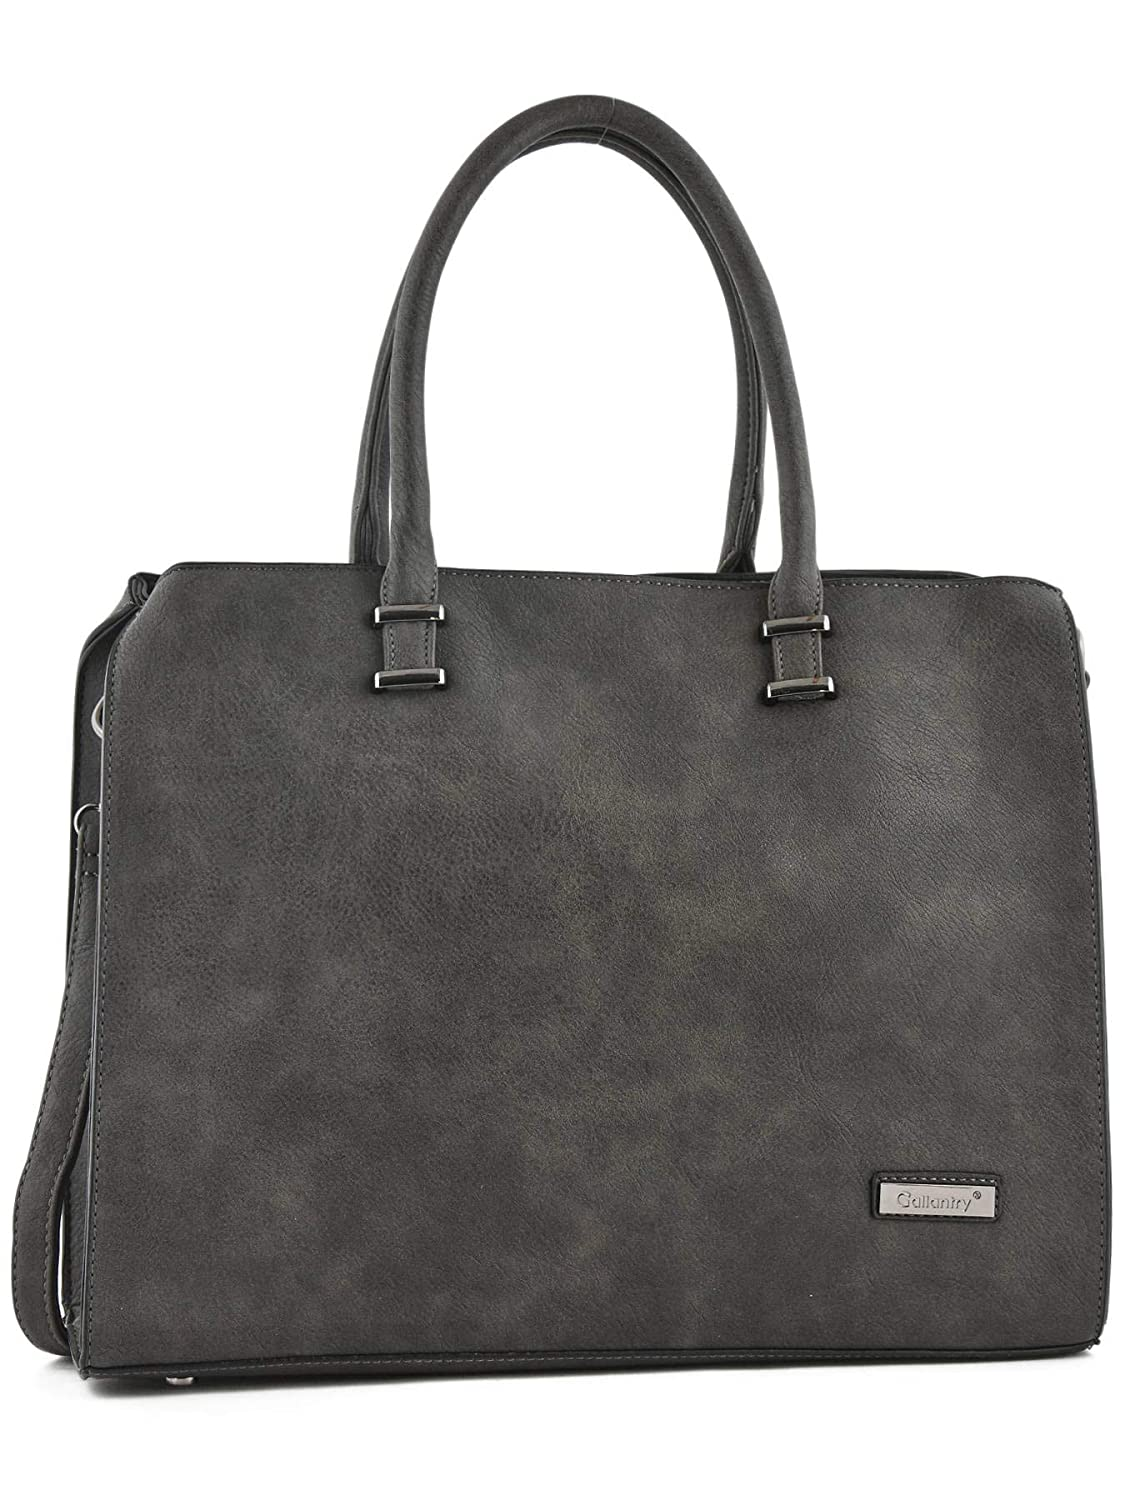 Gallantry Sac Shopping Format A4 Femme Gris